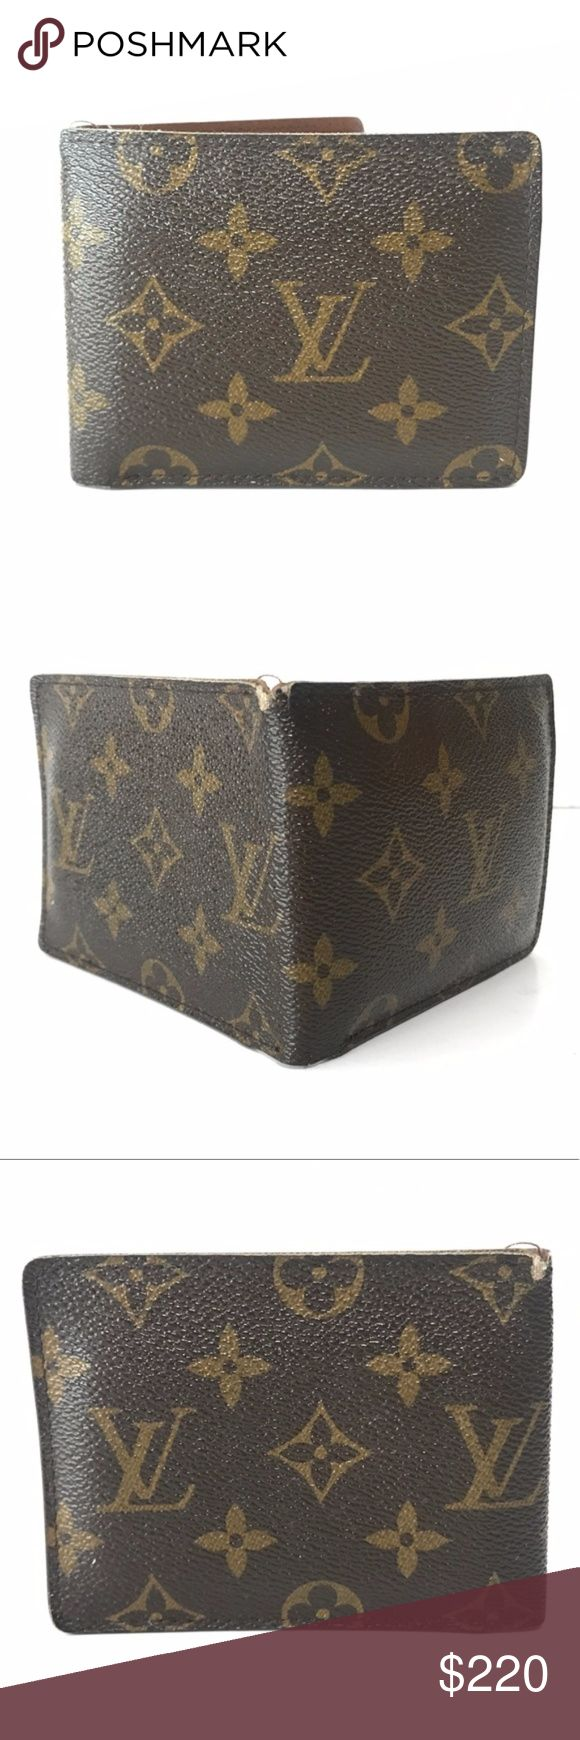 """Authentic Louis Vuitton Porte Billets Men's Wallet 100% Authentic Real Genuine LV Louis Vuitton Men's Wallet   Style: PORTE BILLETS 3 CARD BILLFOLD WALLET Color: Monogram Mono Canvas Brown  Date Code: CA4018 (Made in Spain Fall 2008) Size: 3.5"""" Height 4.5"""" Width Msrp: $490  Brown leather lining, four card slots, two slit pockets, one bill compartment and ID slot at interior walls and fold-over closure.  Good used condition (wear around edges, few dirt spots)  @ModaByBoutique Moda Boutique SF…"""